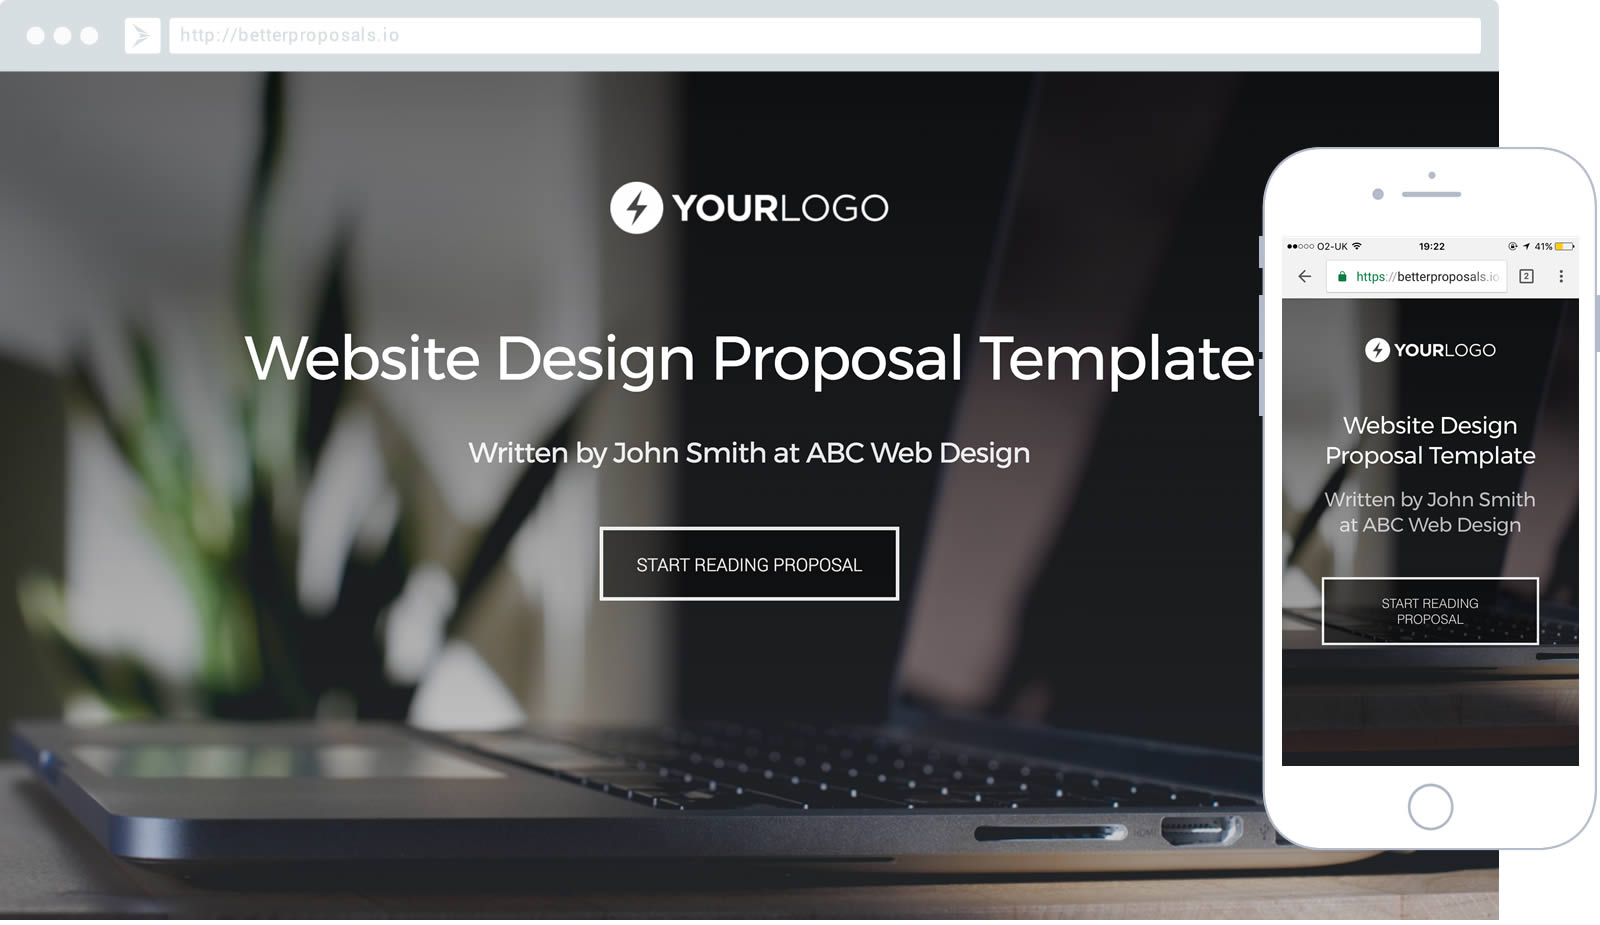 This Website Design Proposal Template Has Won Over $120,000,000 In The Last  18 Months Alone. Thatu0027s Not By Accident. This Is Based On A Proven, ...